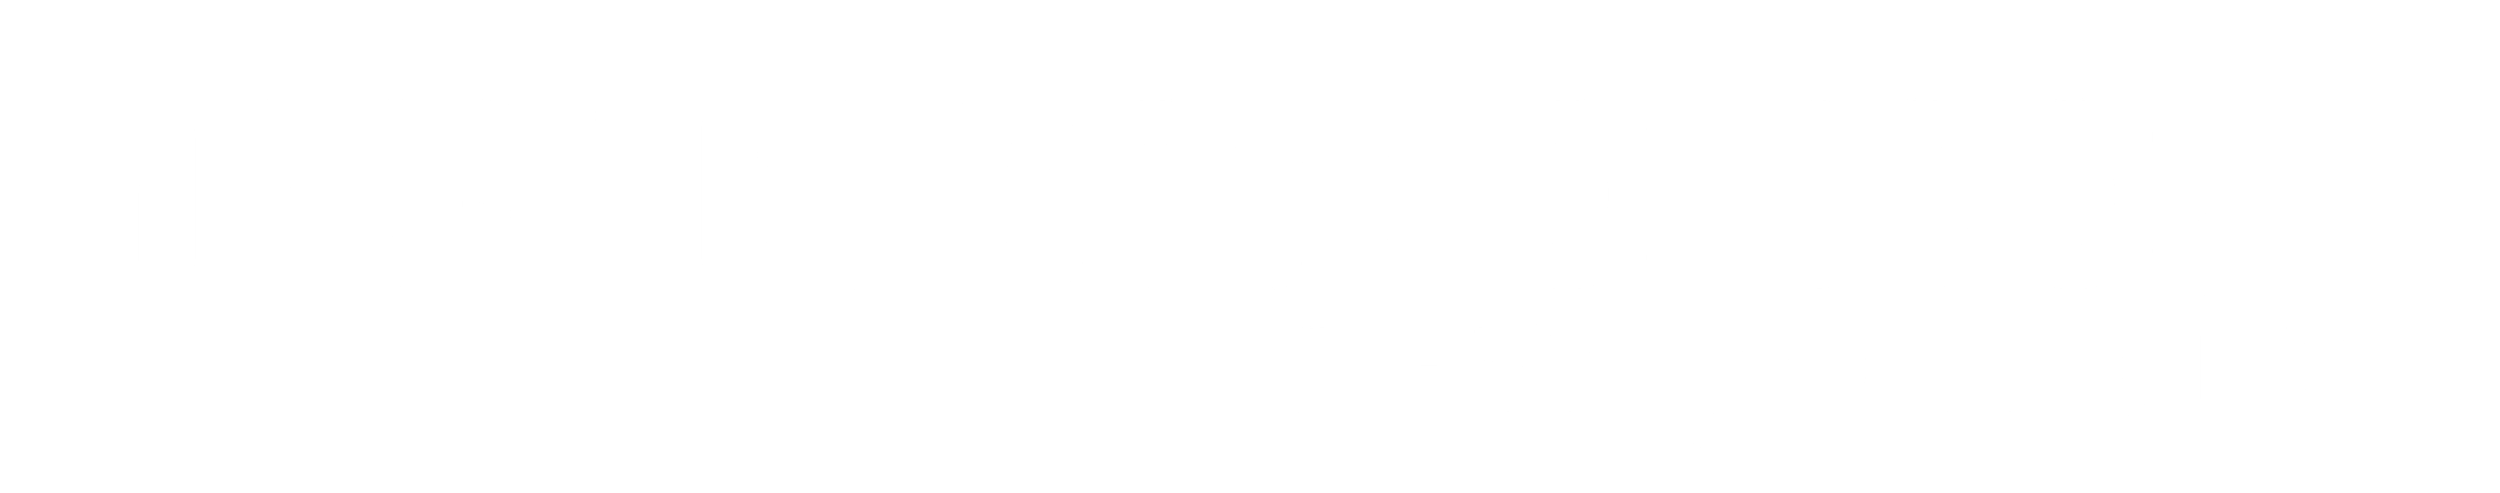 electronicon nyc.png